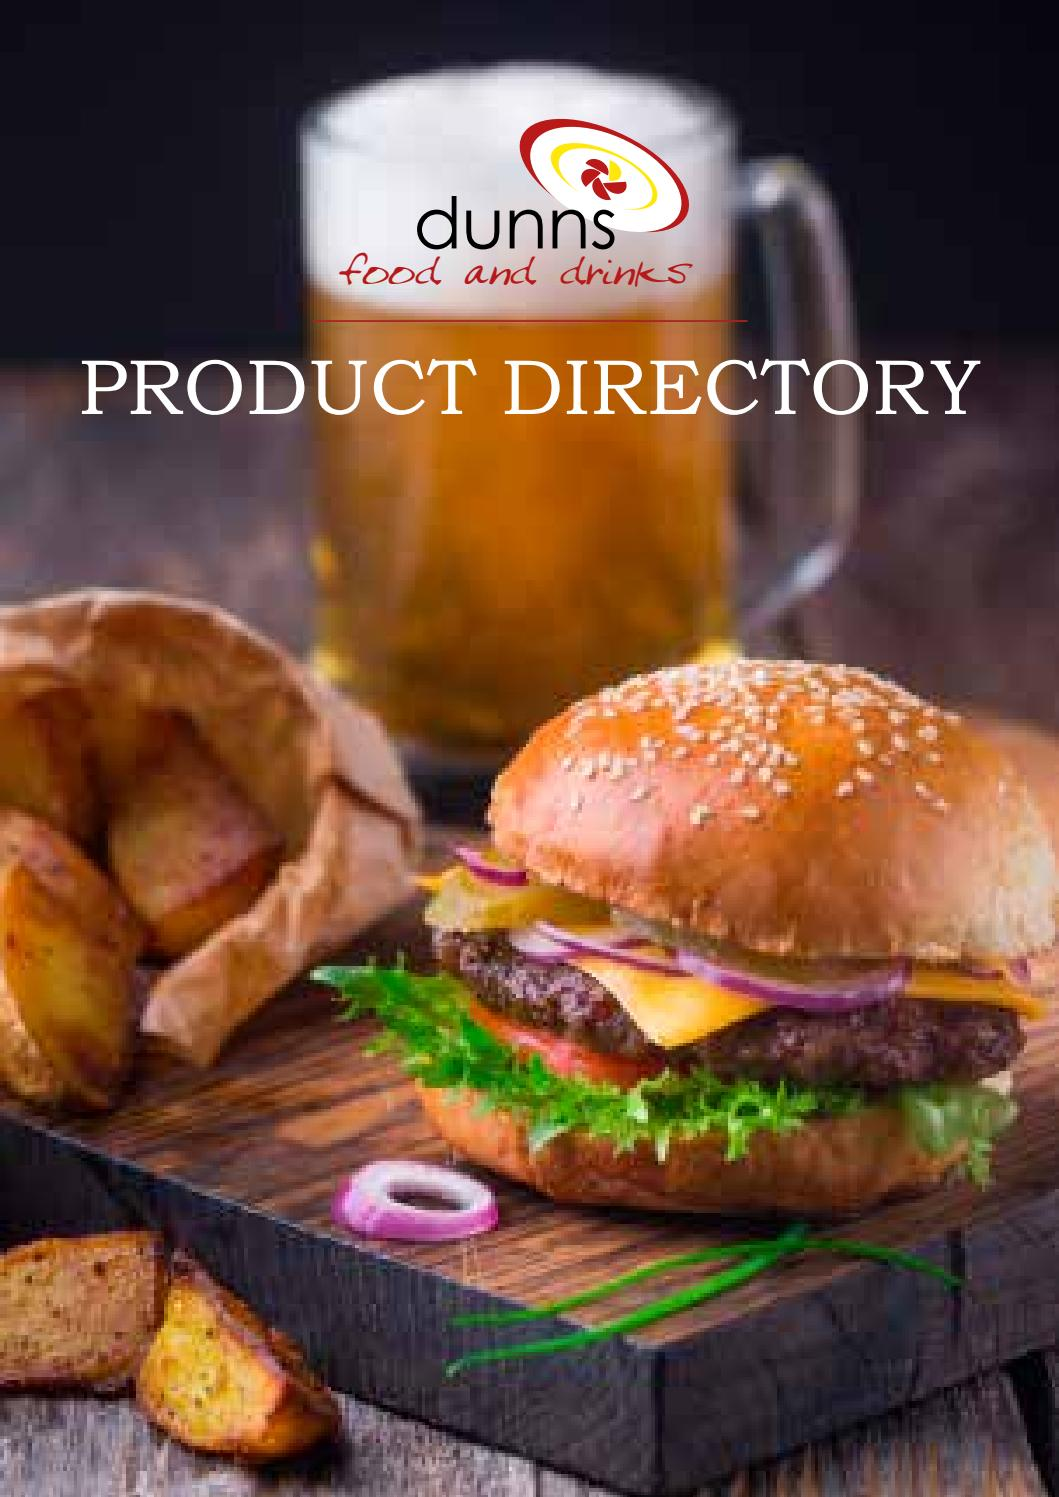 Dunns Food   Drinks Product Directory by Infotech Studio - issuu 006643363e0ed